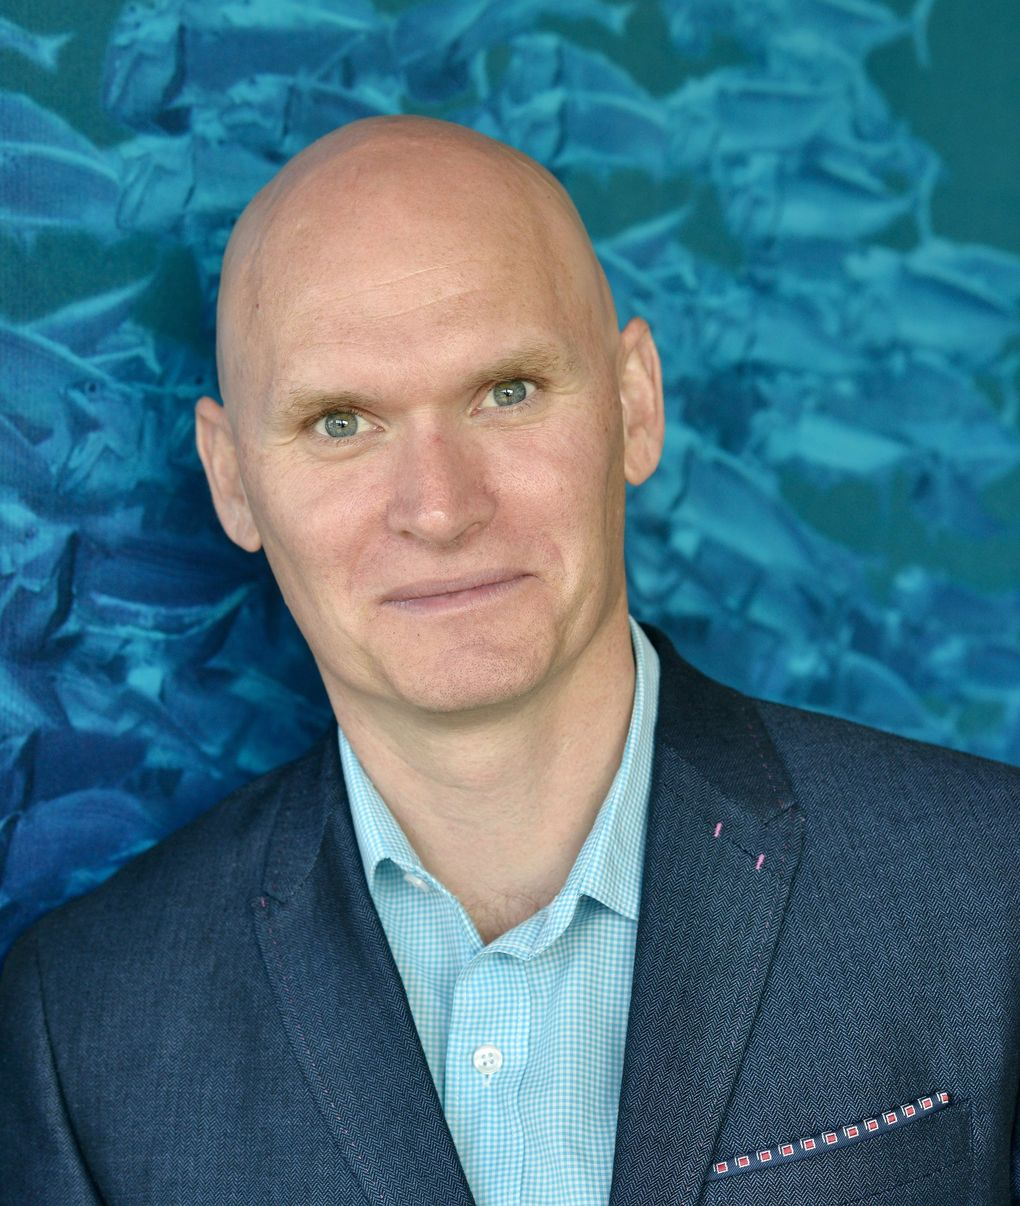 """Anthony Doerr, author of the Pulitzer Prize-winning """"All the Light We Cannot See,"""" will speak about his new book, """"Cloud Cuckoo Land,"""" on Sept. 28 at Seattle Arts & Lectures. (Ulf Andersen)"""